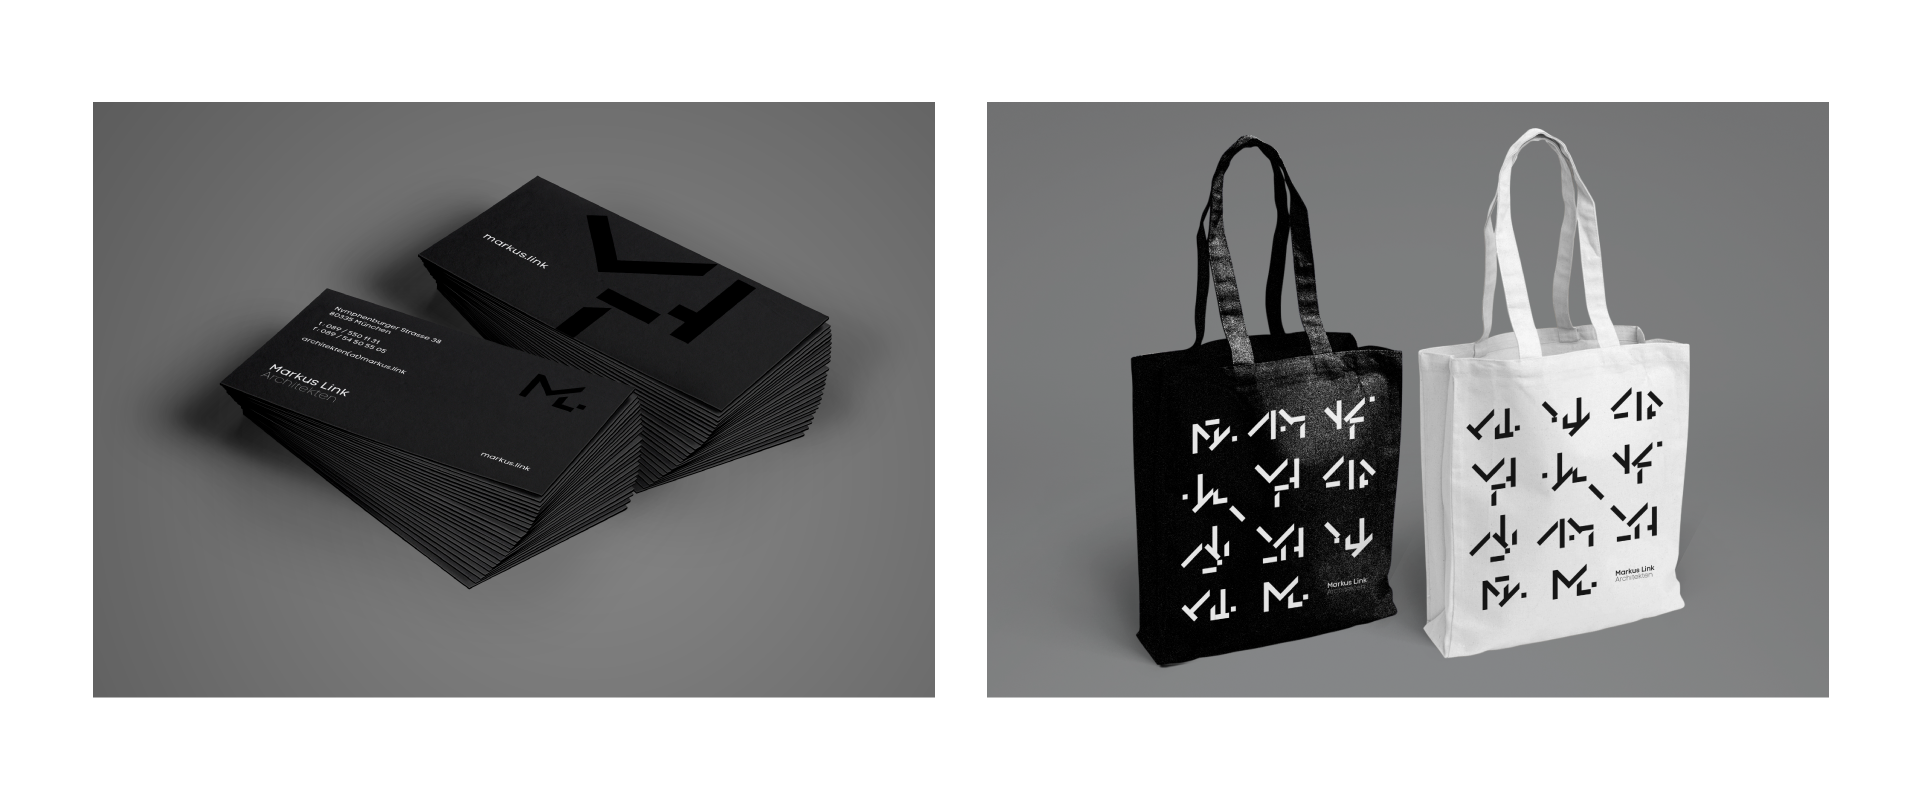 Markus Link business cards and tote bags